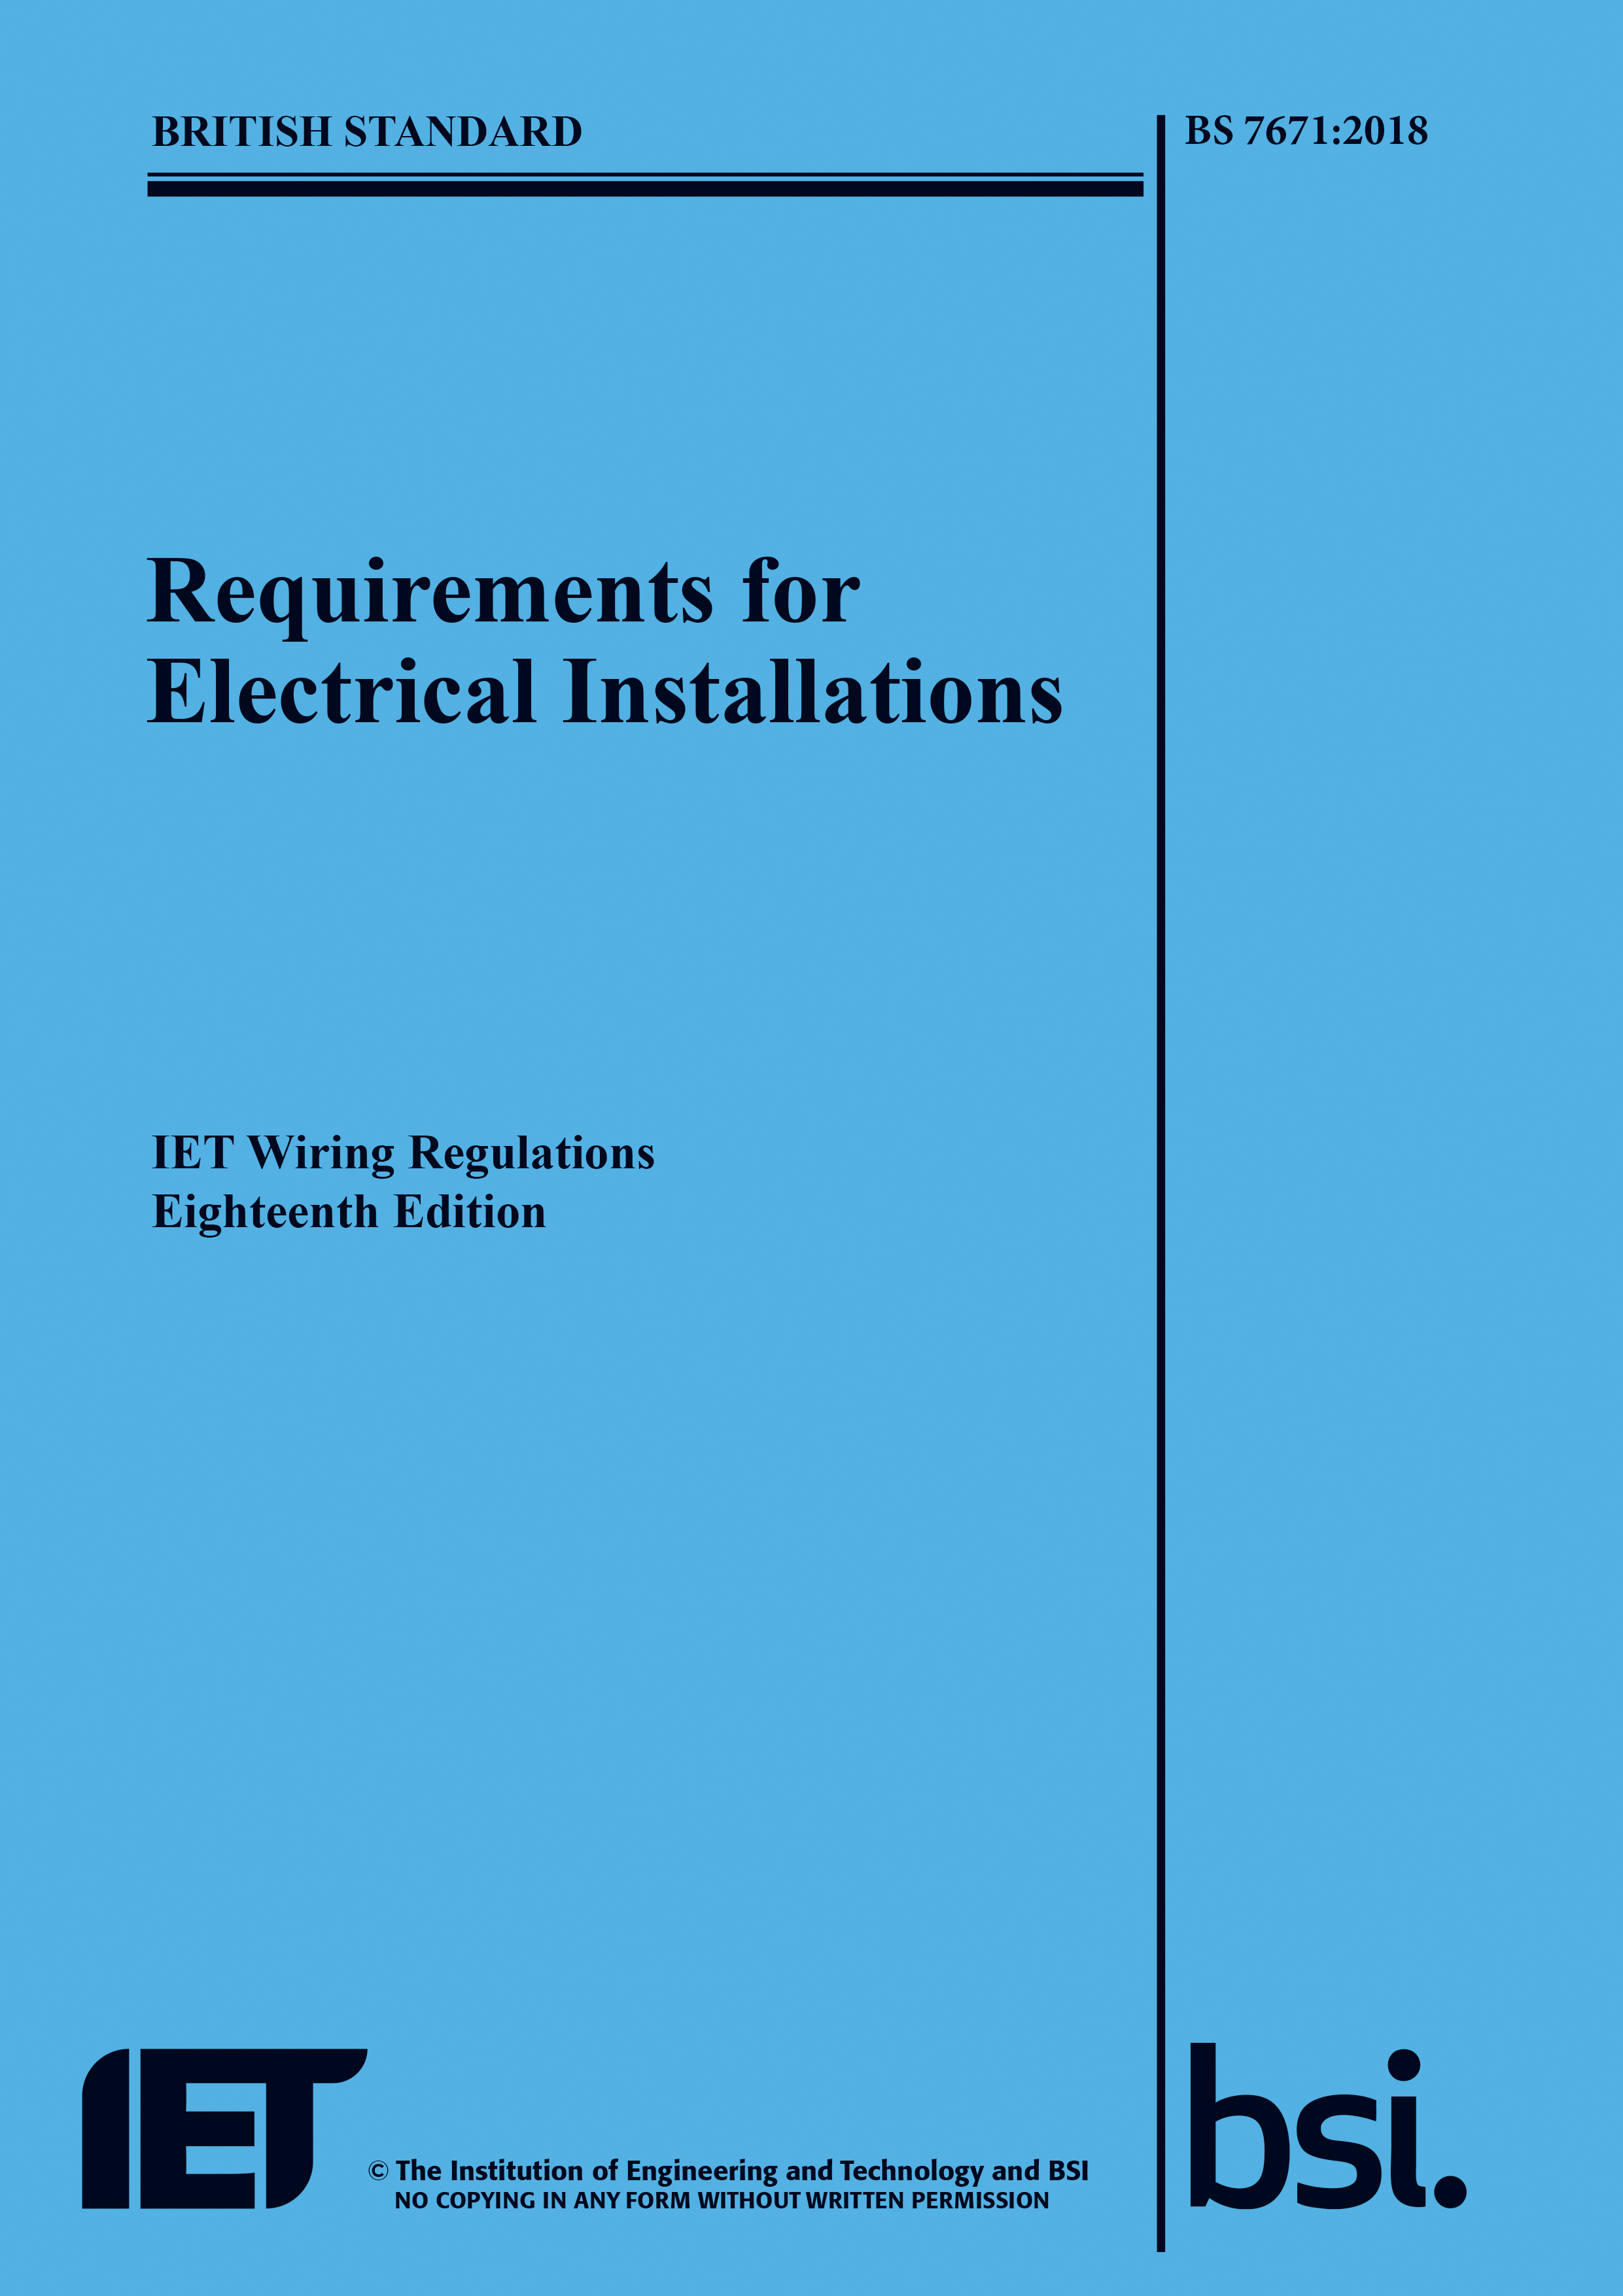 18th Edition IET Wiring Regulations for electrical installations now ...